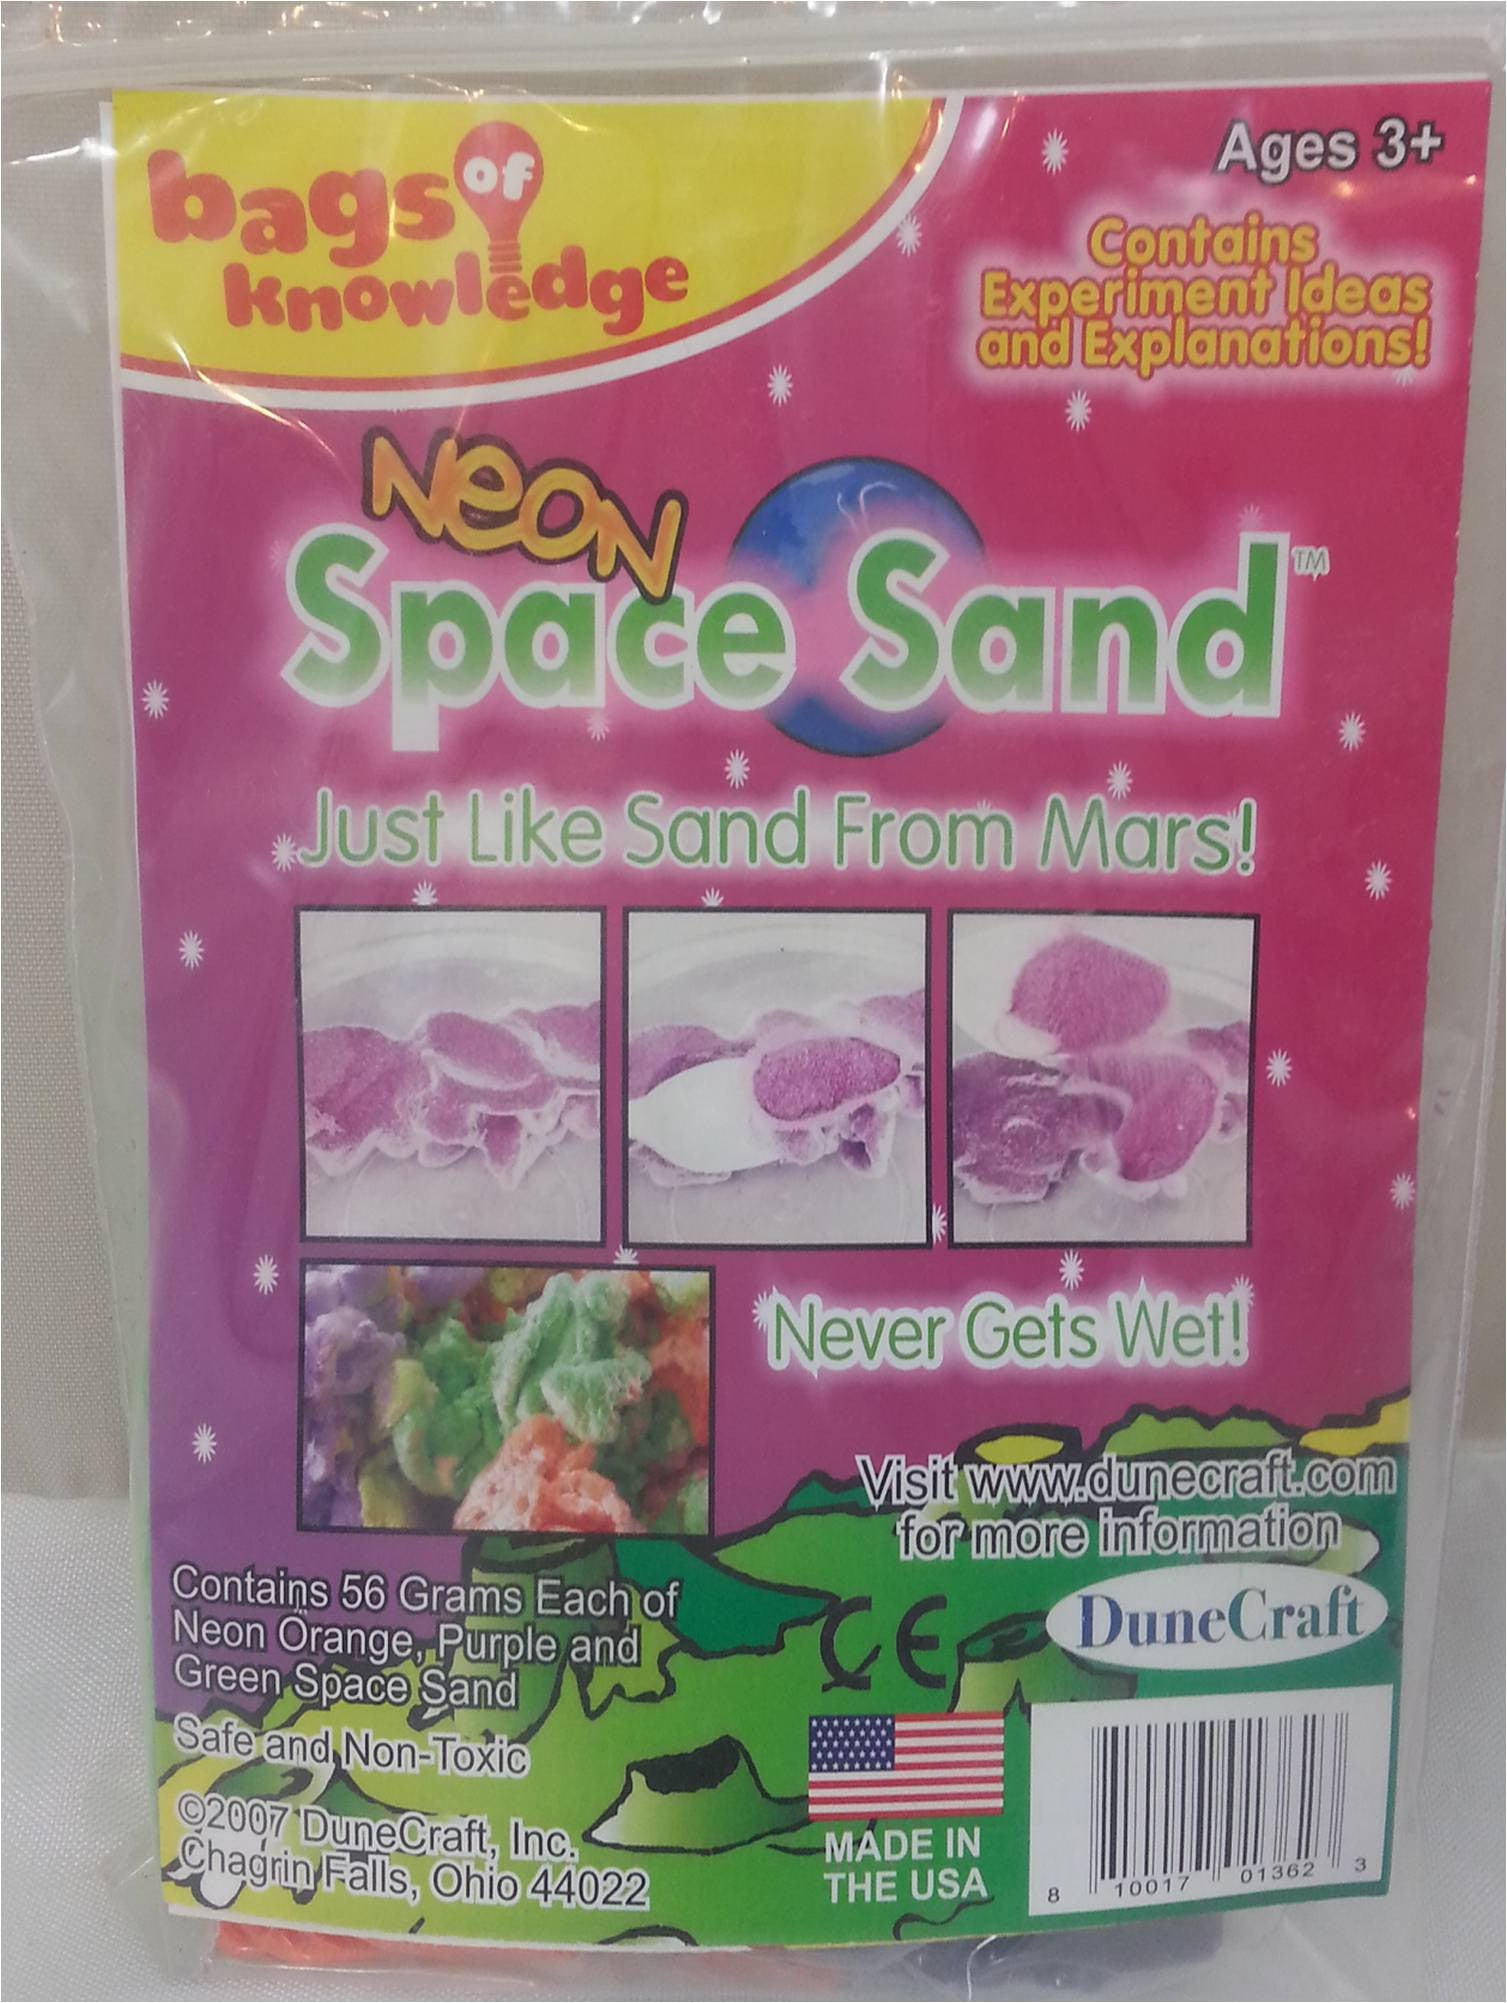 Neon Space Sand Bag of Knowledge - Off The Wall Toys and Gifts